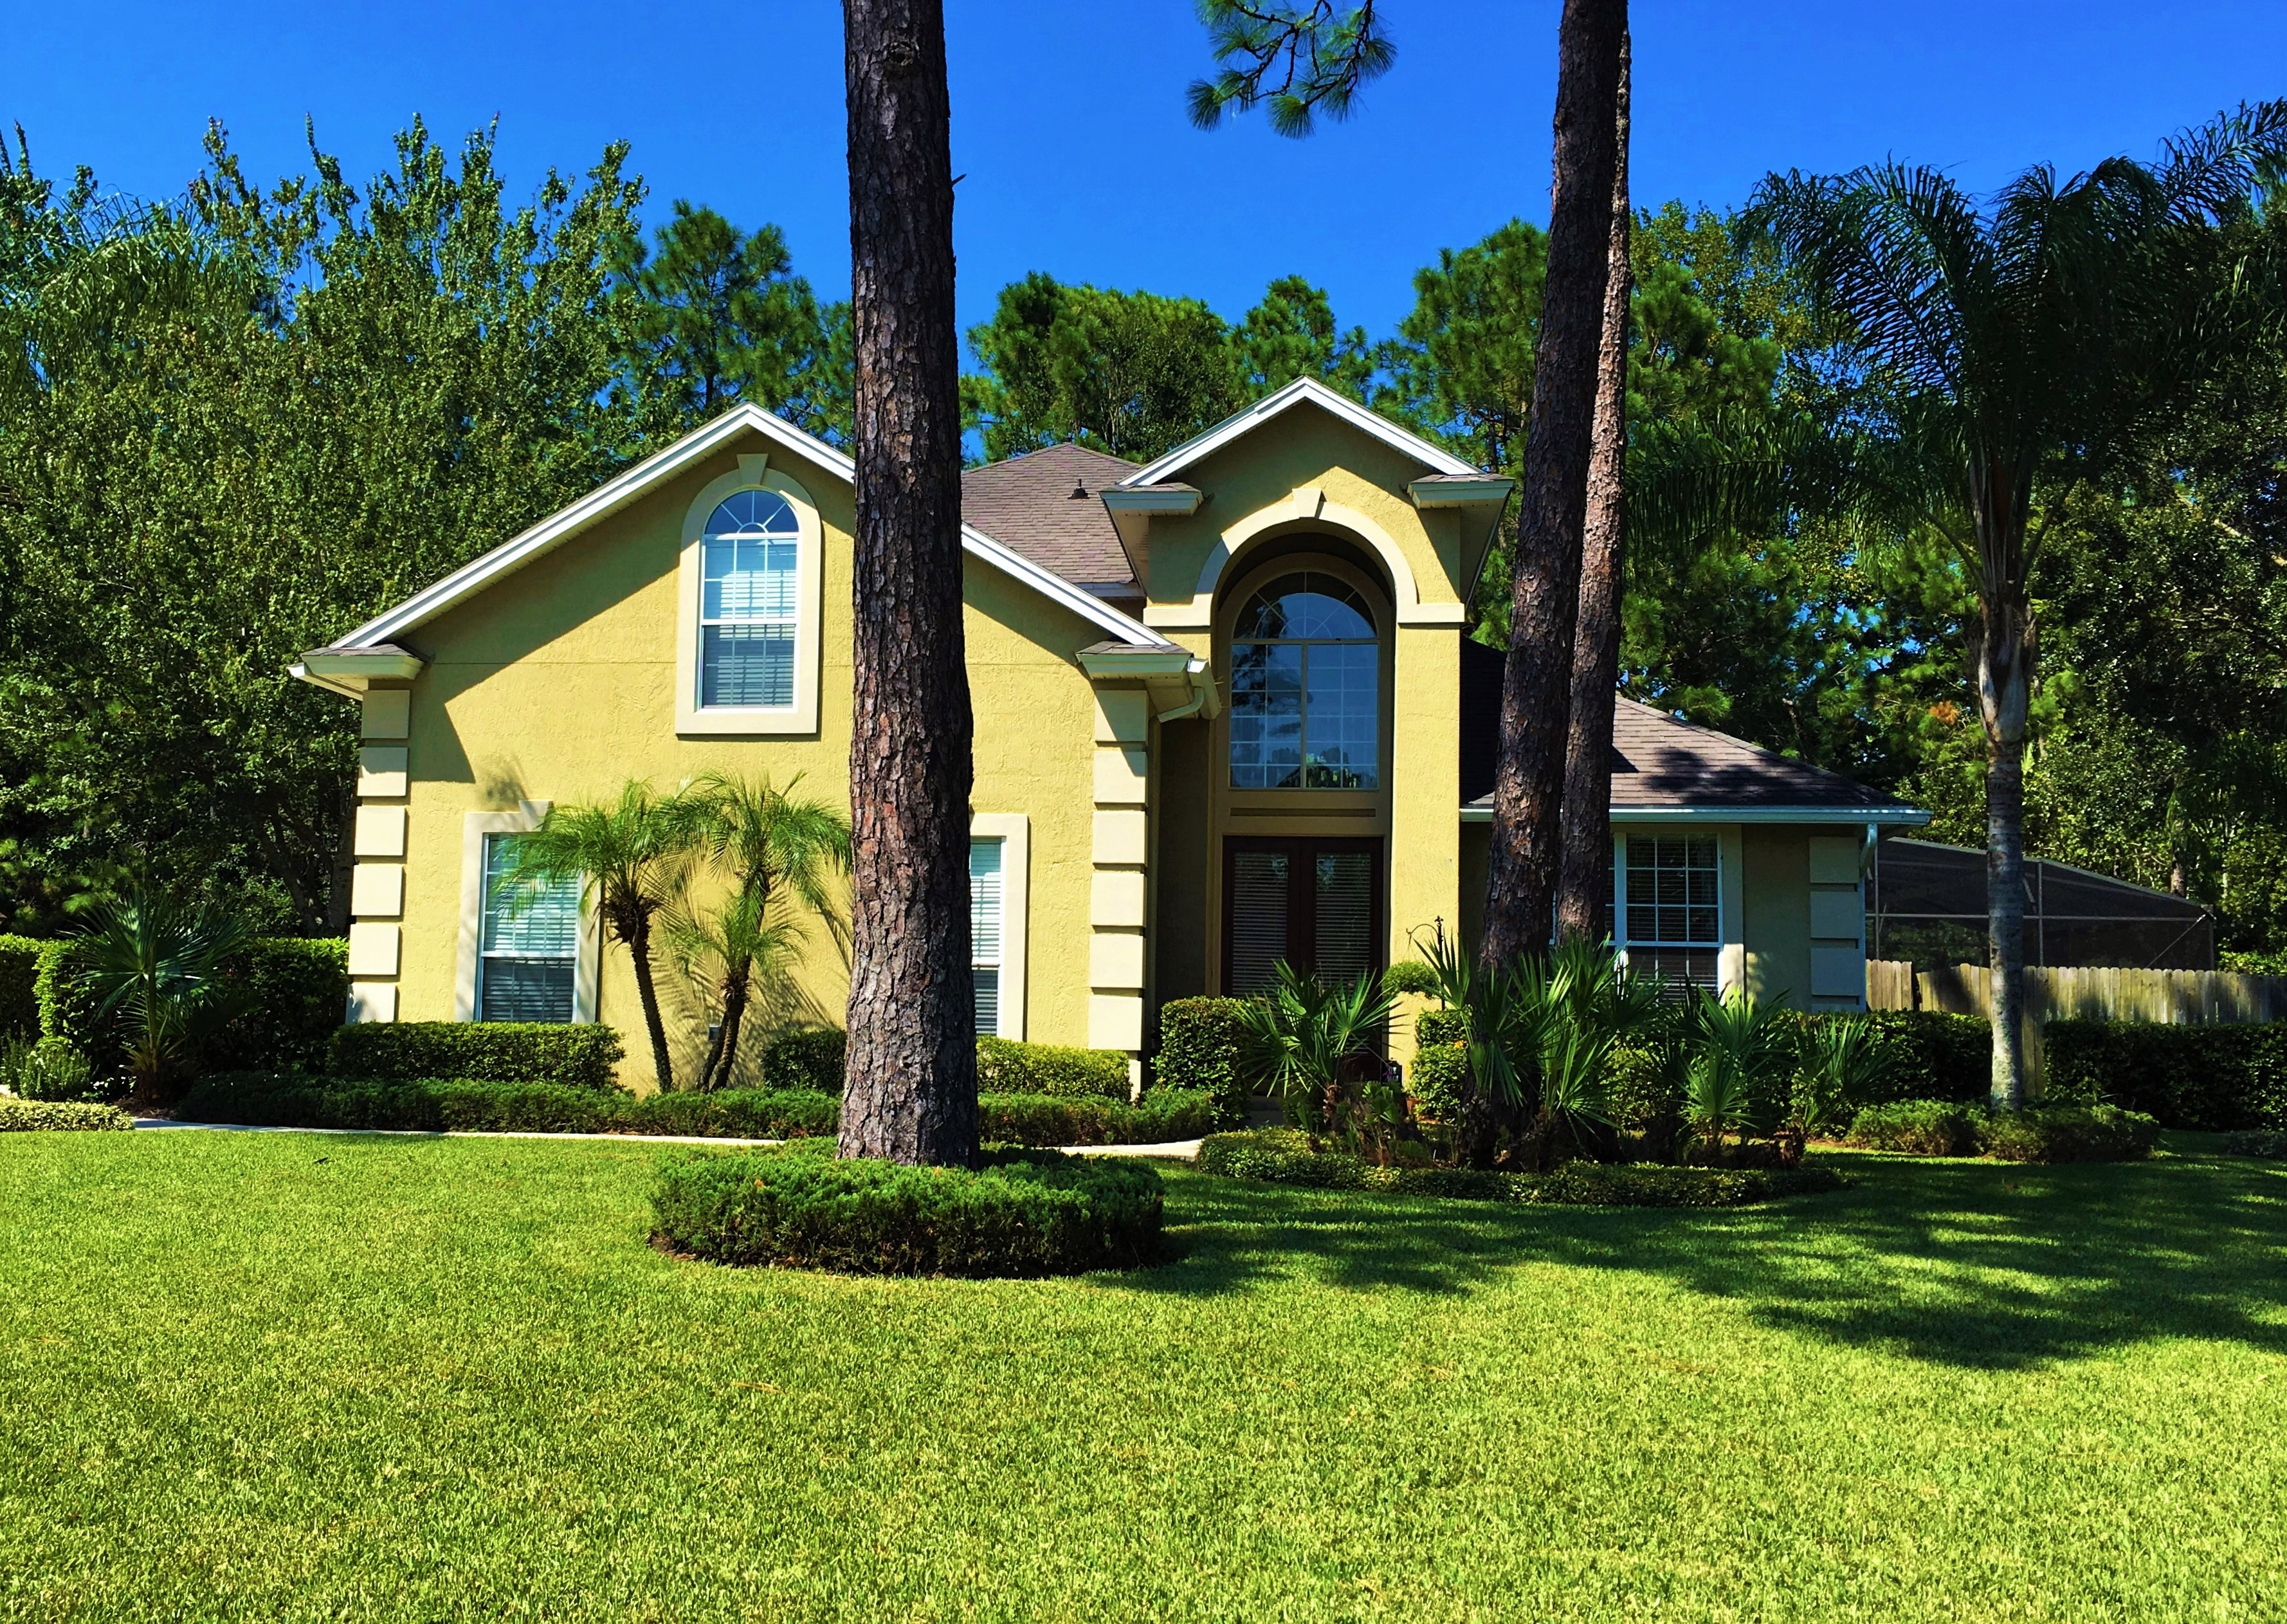 The Woods Jacksonville FL Homes For Sale on